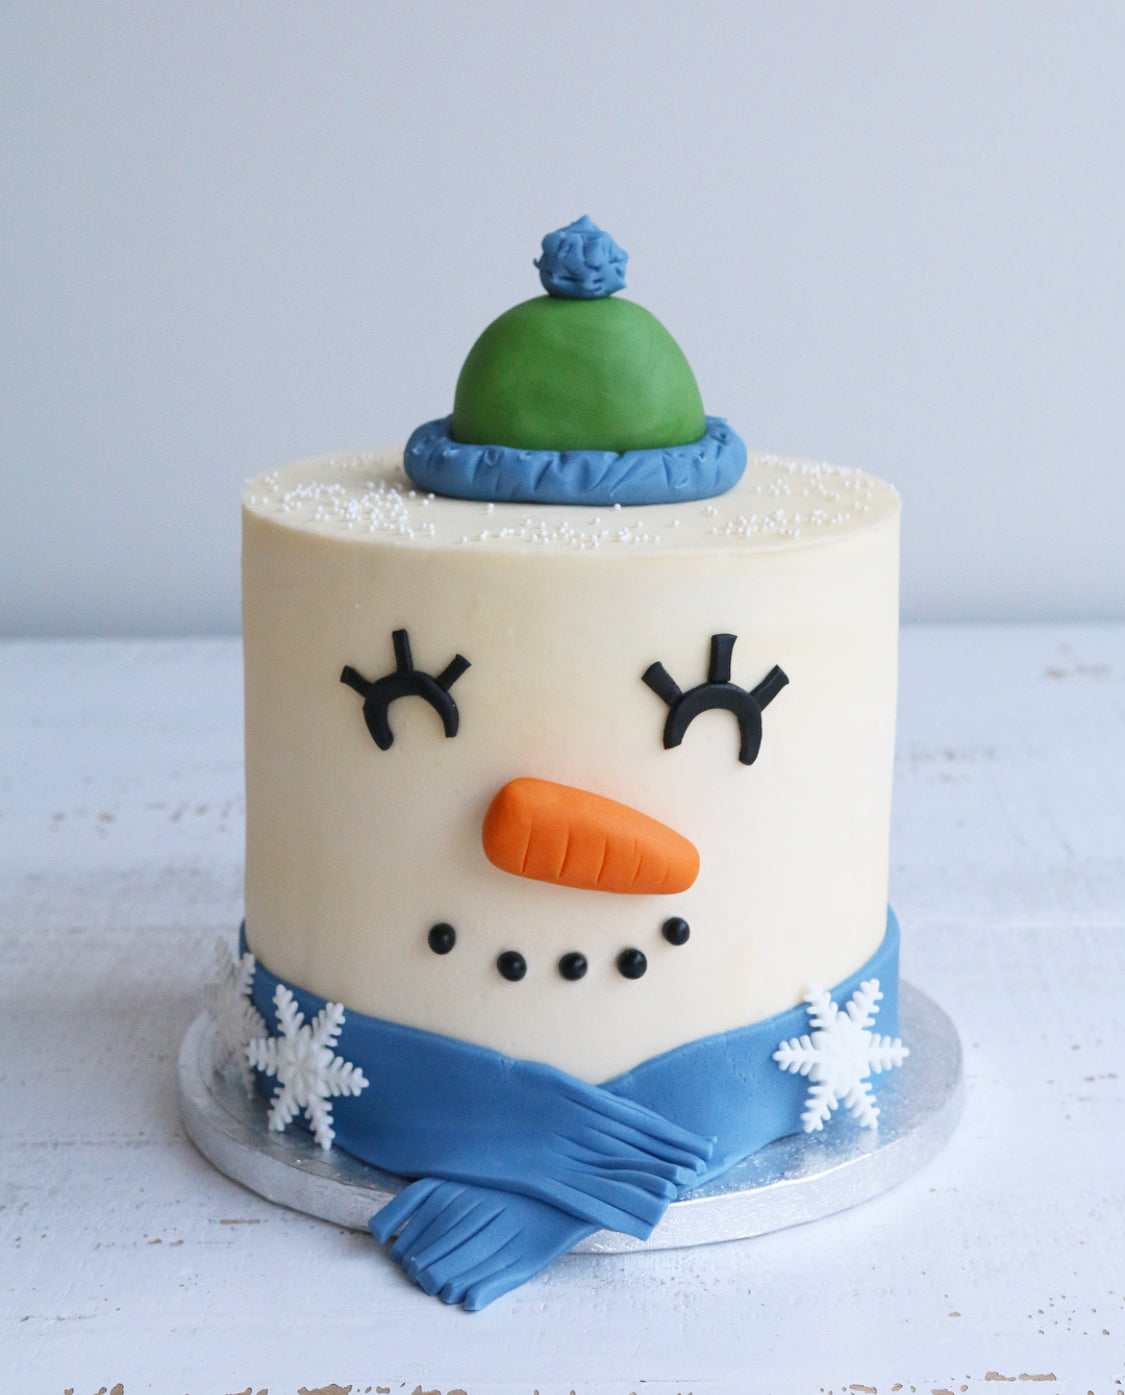 Tremendous Frosty The Snowman Cake Claygate Surrey Afternoon Crumbs Personalised Birthday Cards Petedlily Jamesorg